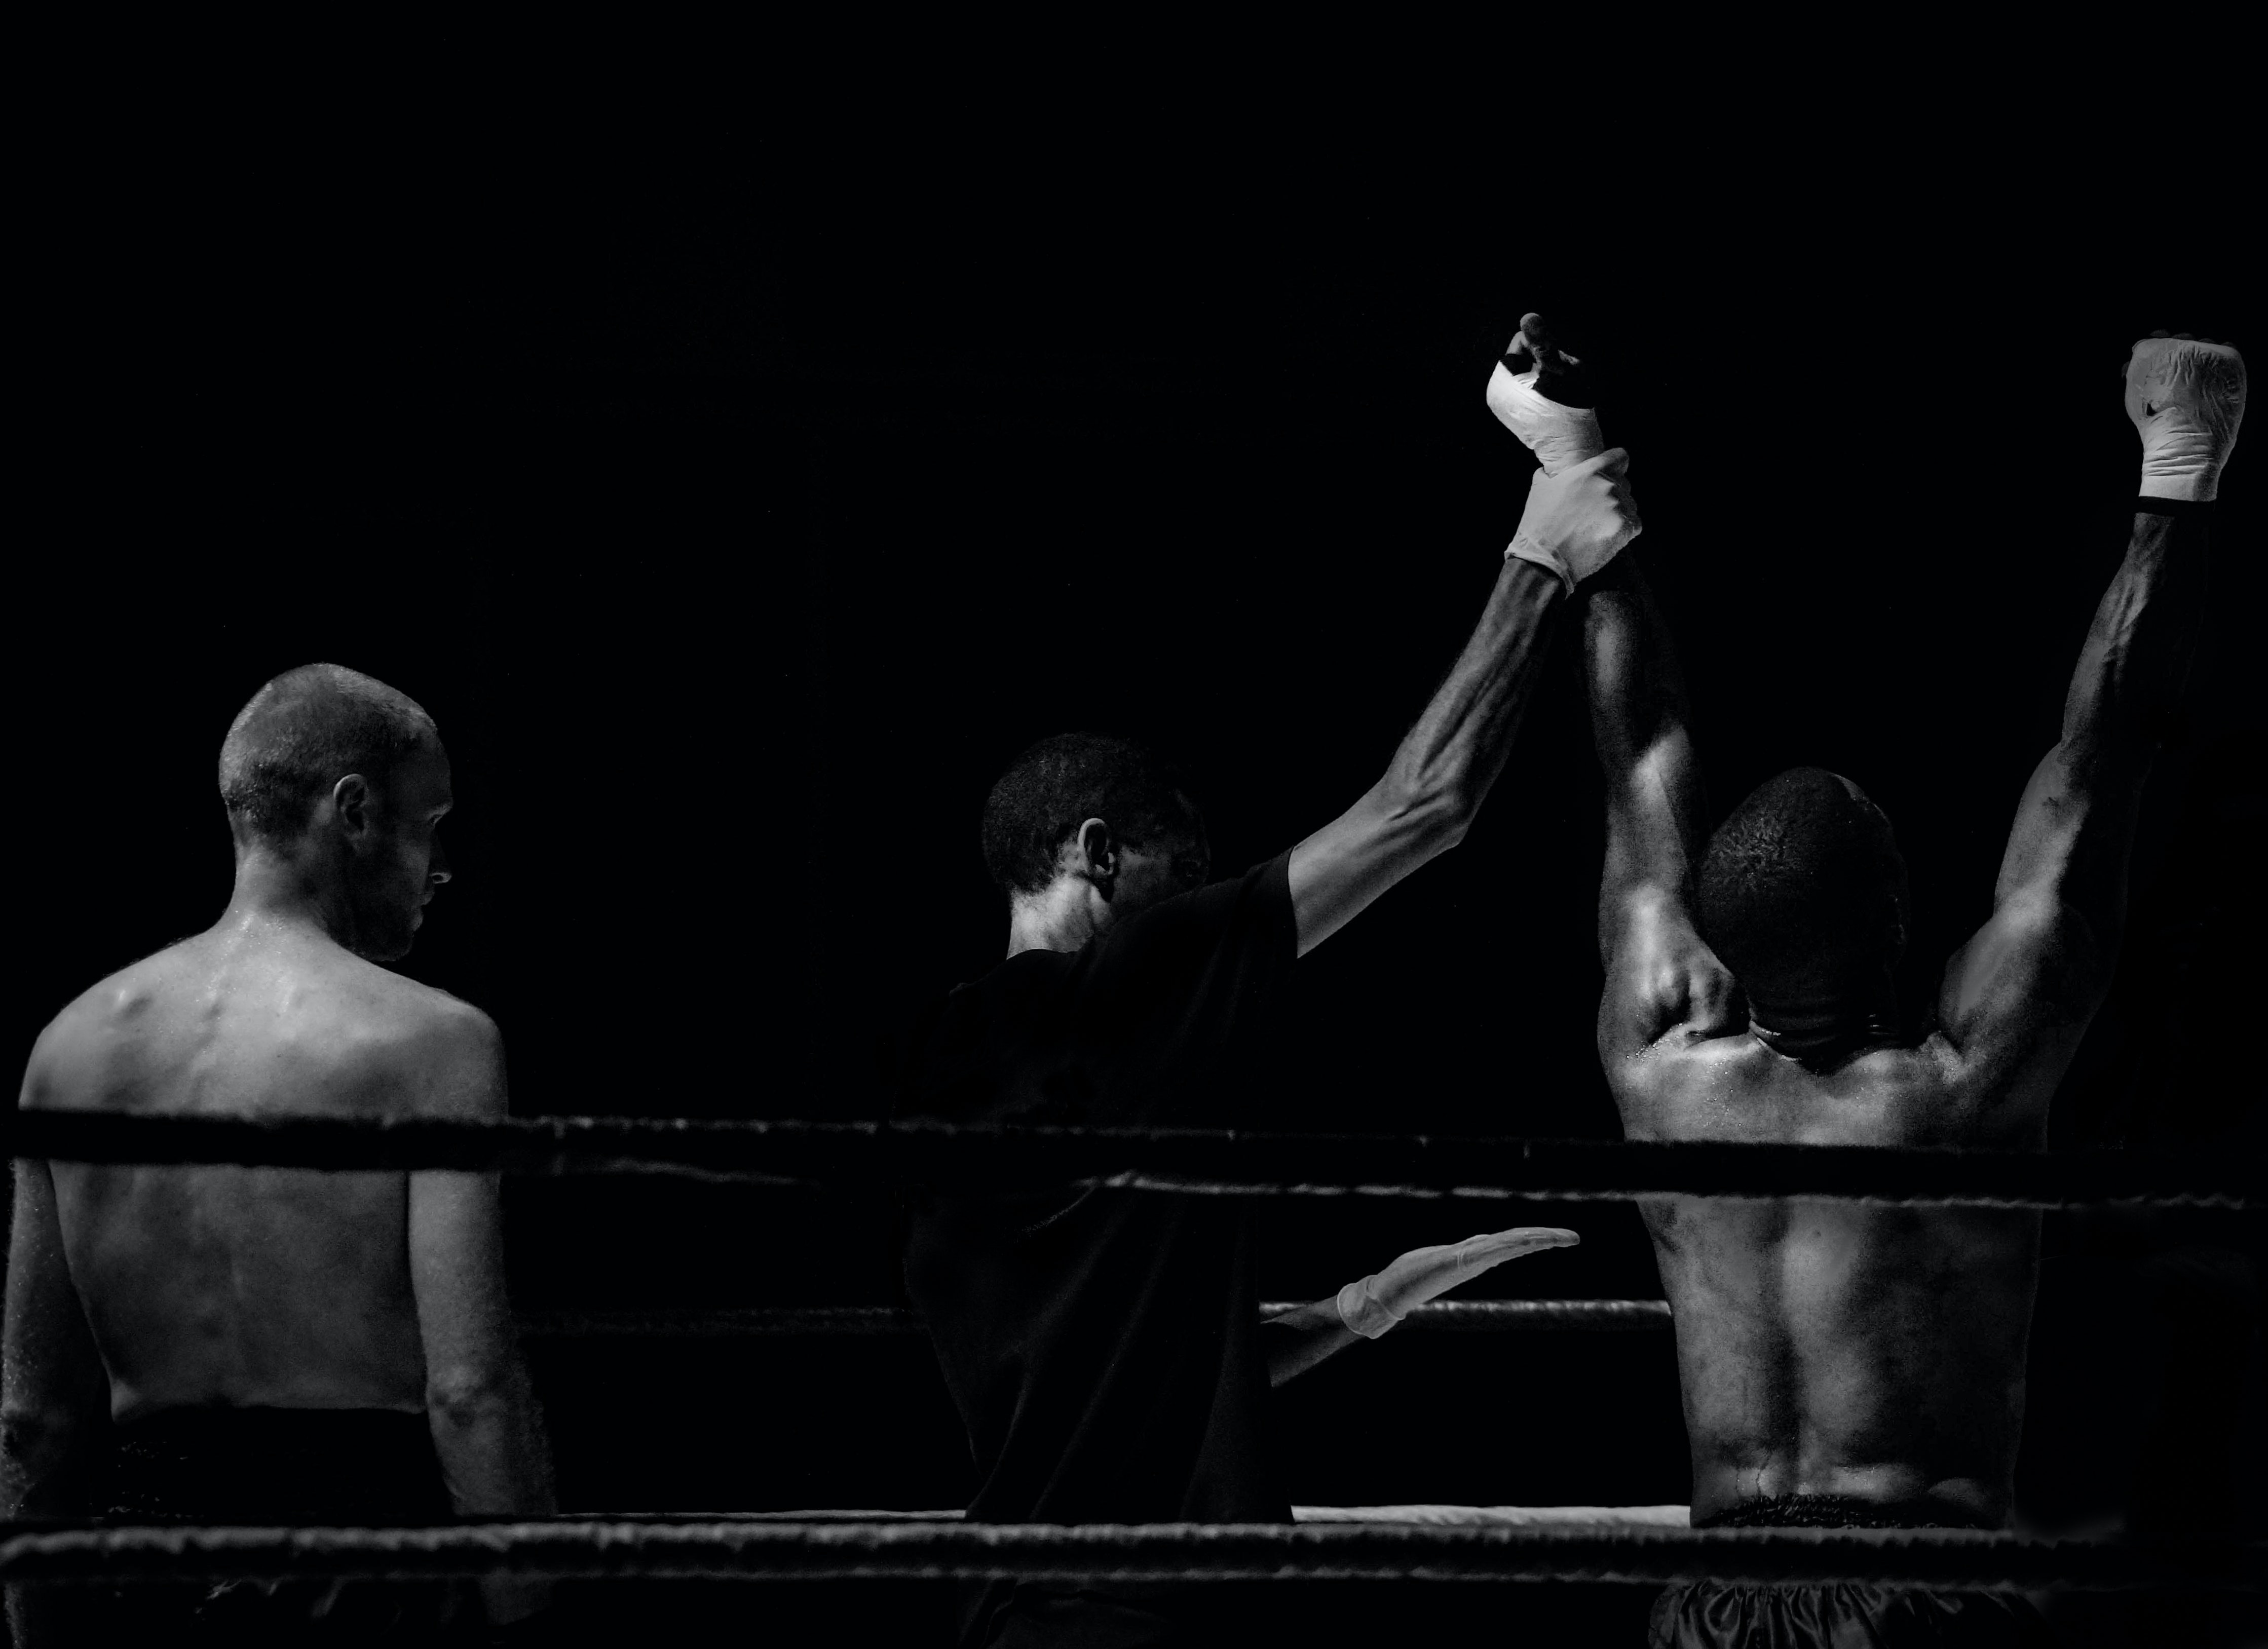 Sports Wallpapers Black And White: Grayscale Photography Of Man Holding Boxer's Hand Inside